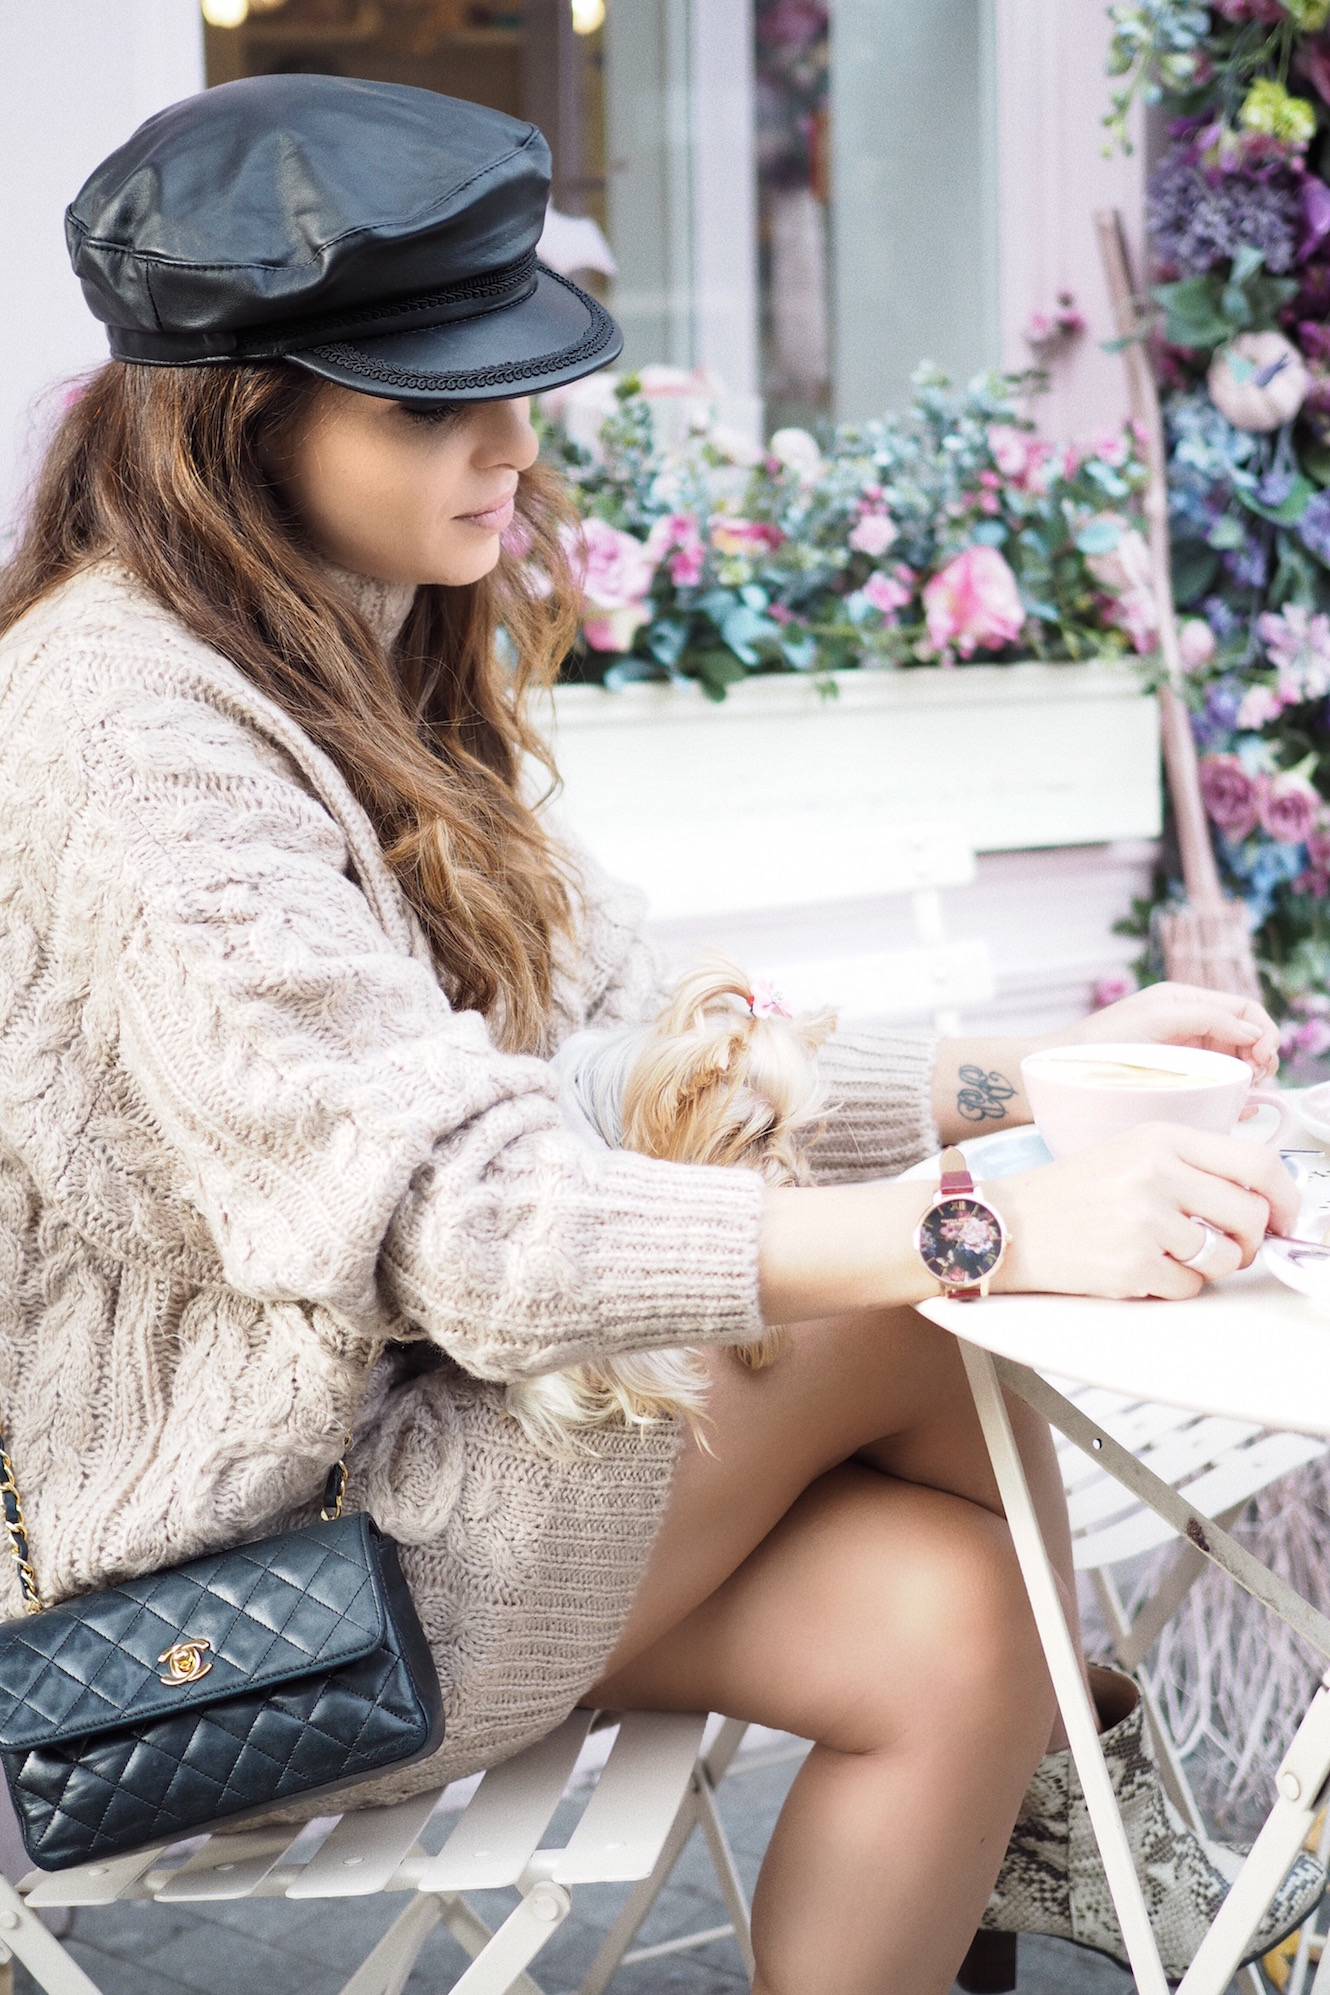 london-street-style-peggy-porschen-coffee-olivia-burton-watches